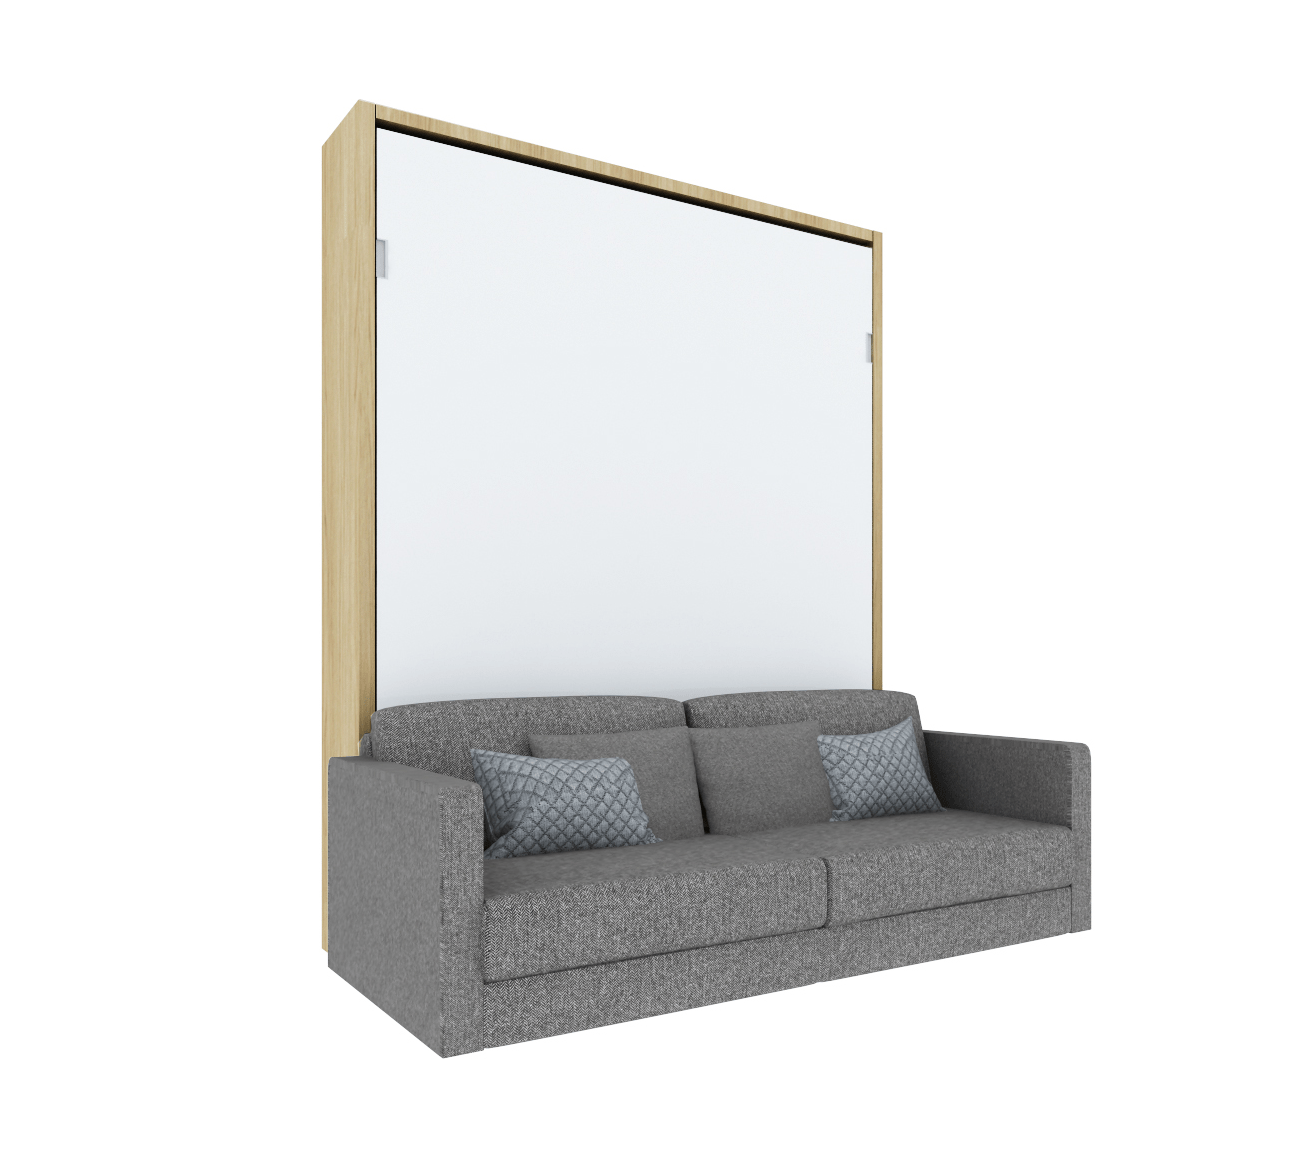 Pat Multifunctional – SmartBed V Sofa